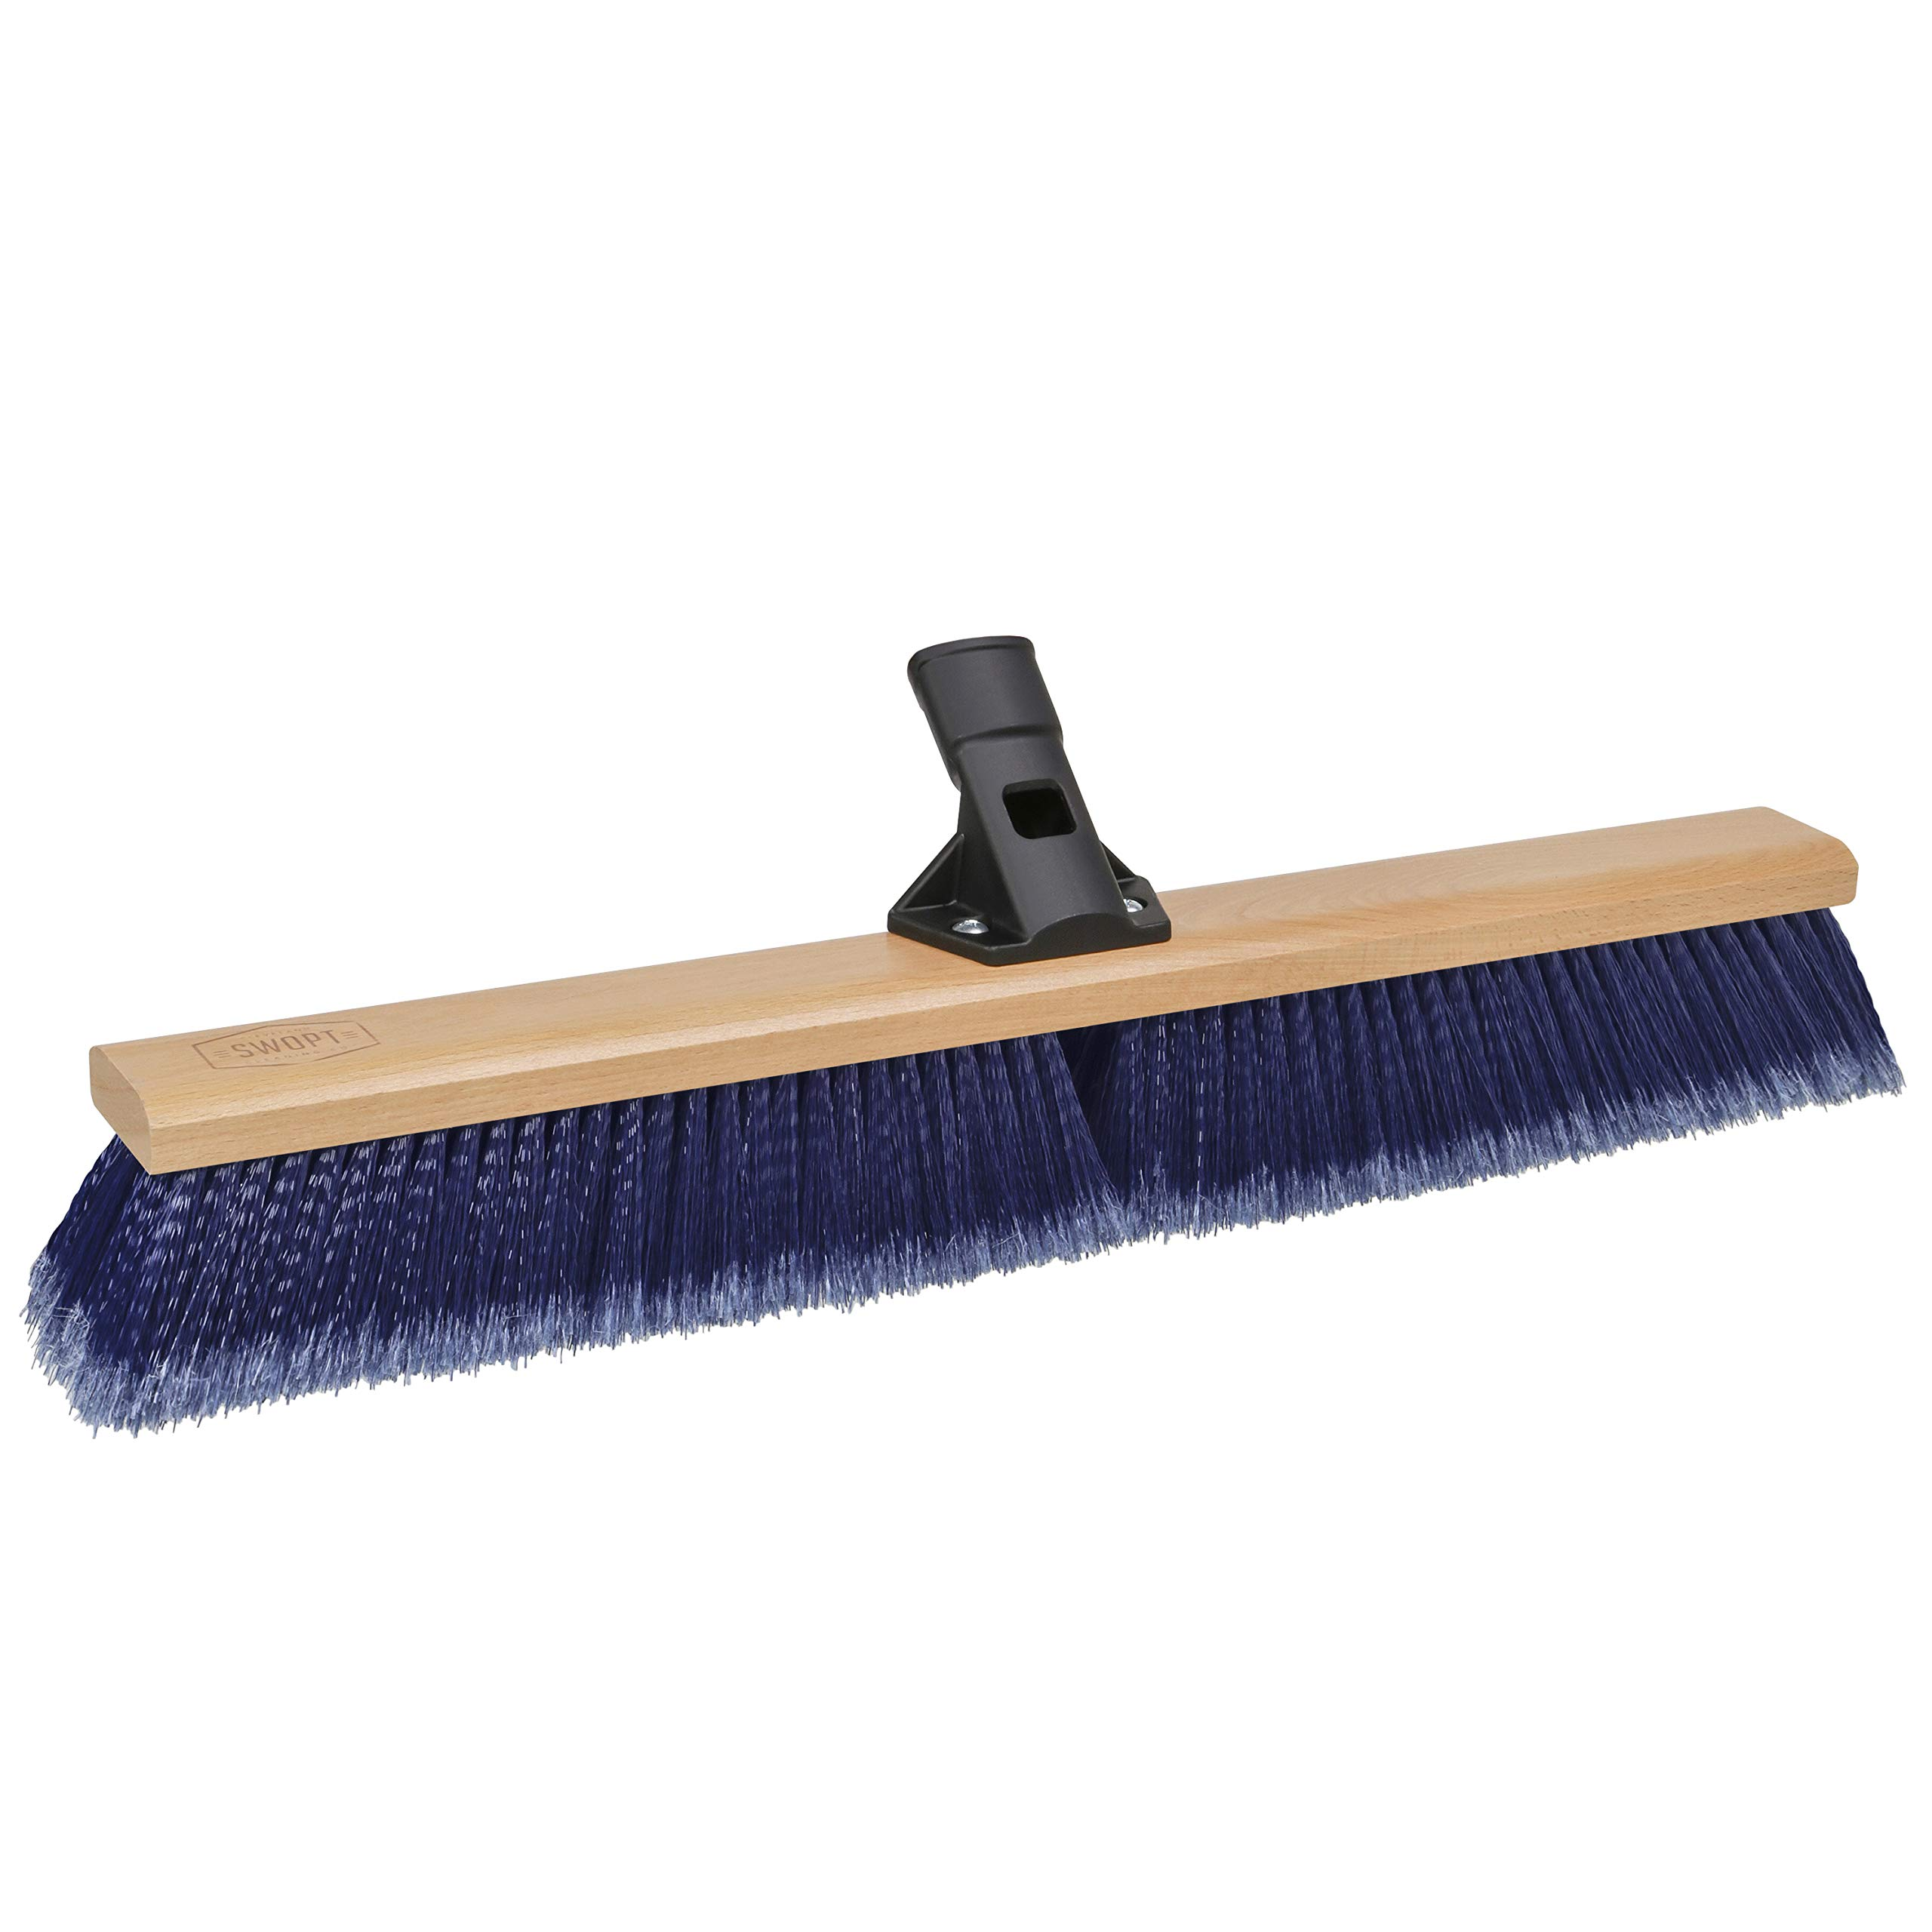 "SWOPT 24"" Premium Multi-Surface Push Broom Head – Push Broom for Indoor and Outdoor Use – Interchangeable with Other SWOPT Products for More Efficient Cleaning and Storage, Head Only, Handle Sold Separately, 5116C4"